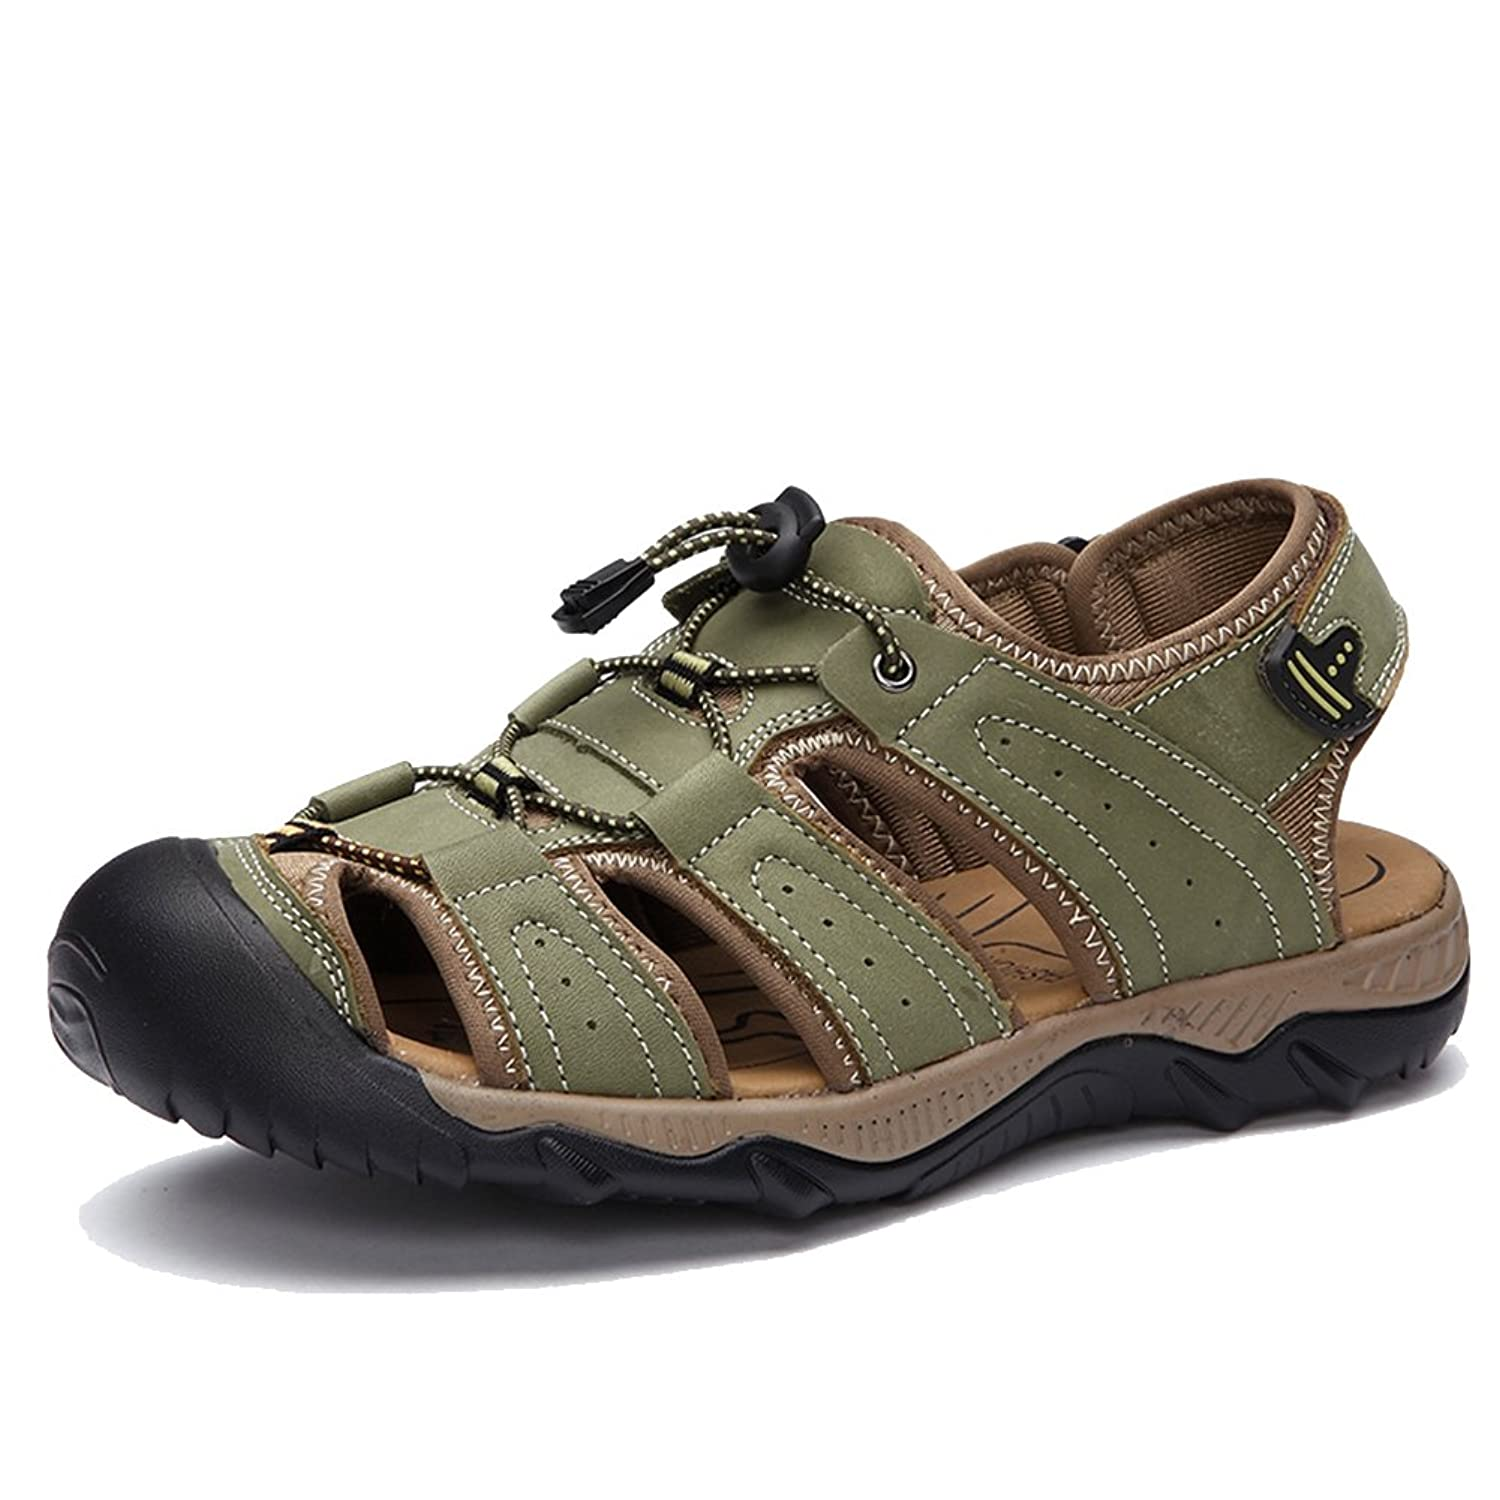 AGOWOO Womens Athletic Closed Toe Hiking Sandals